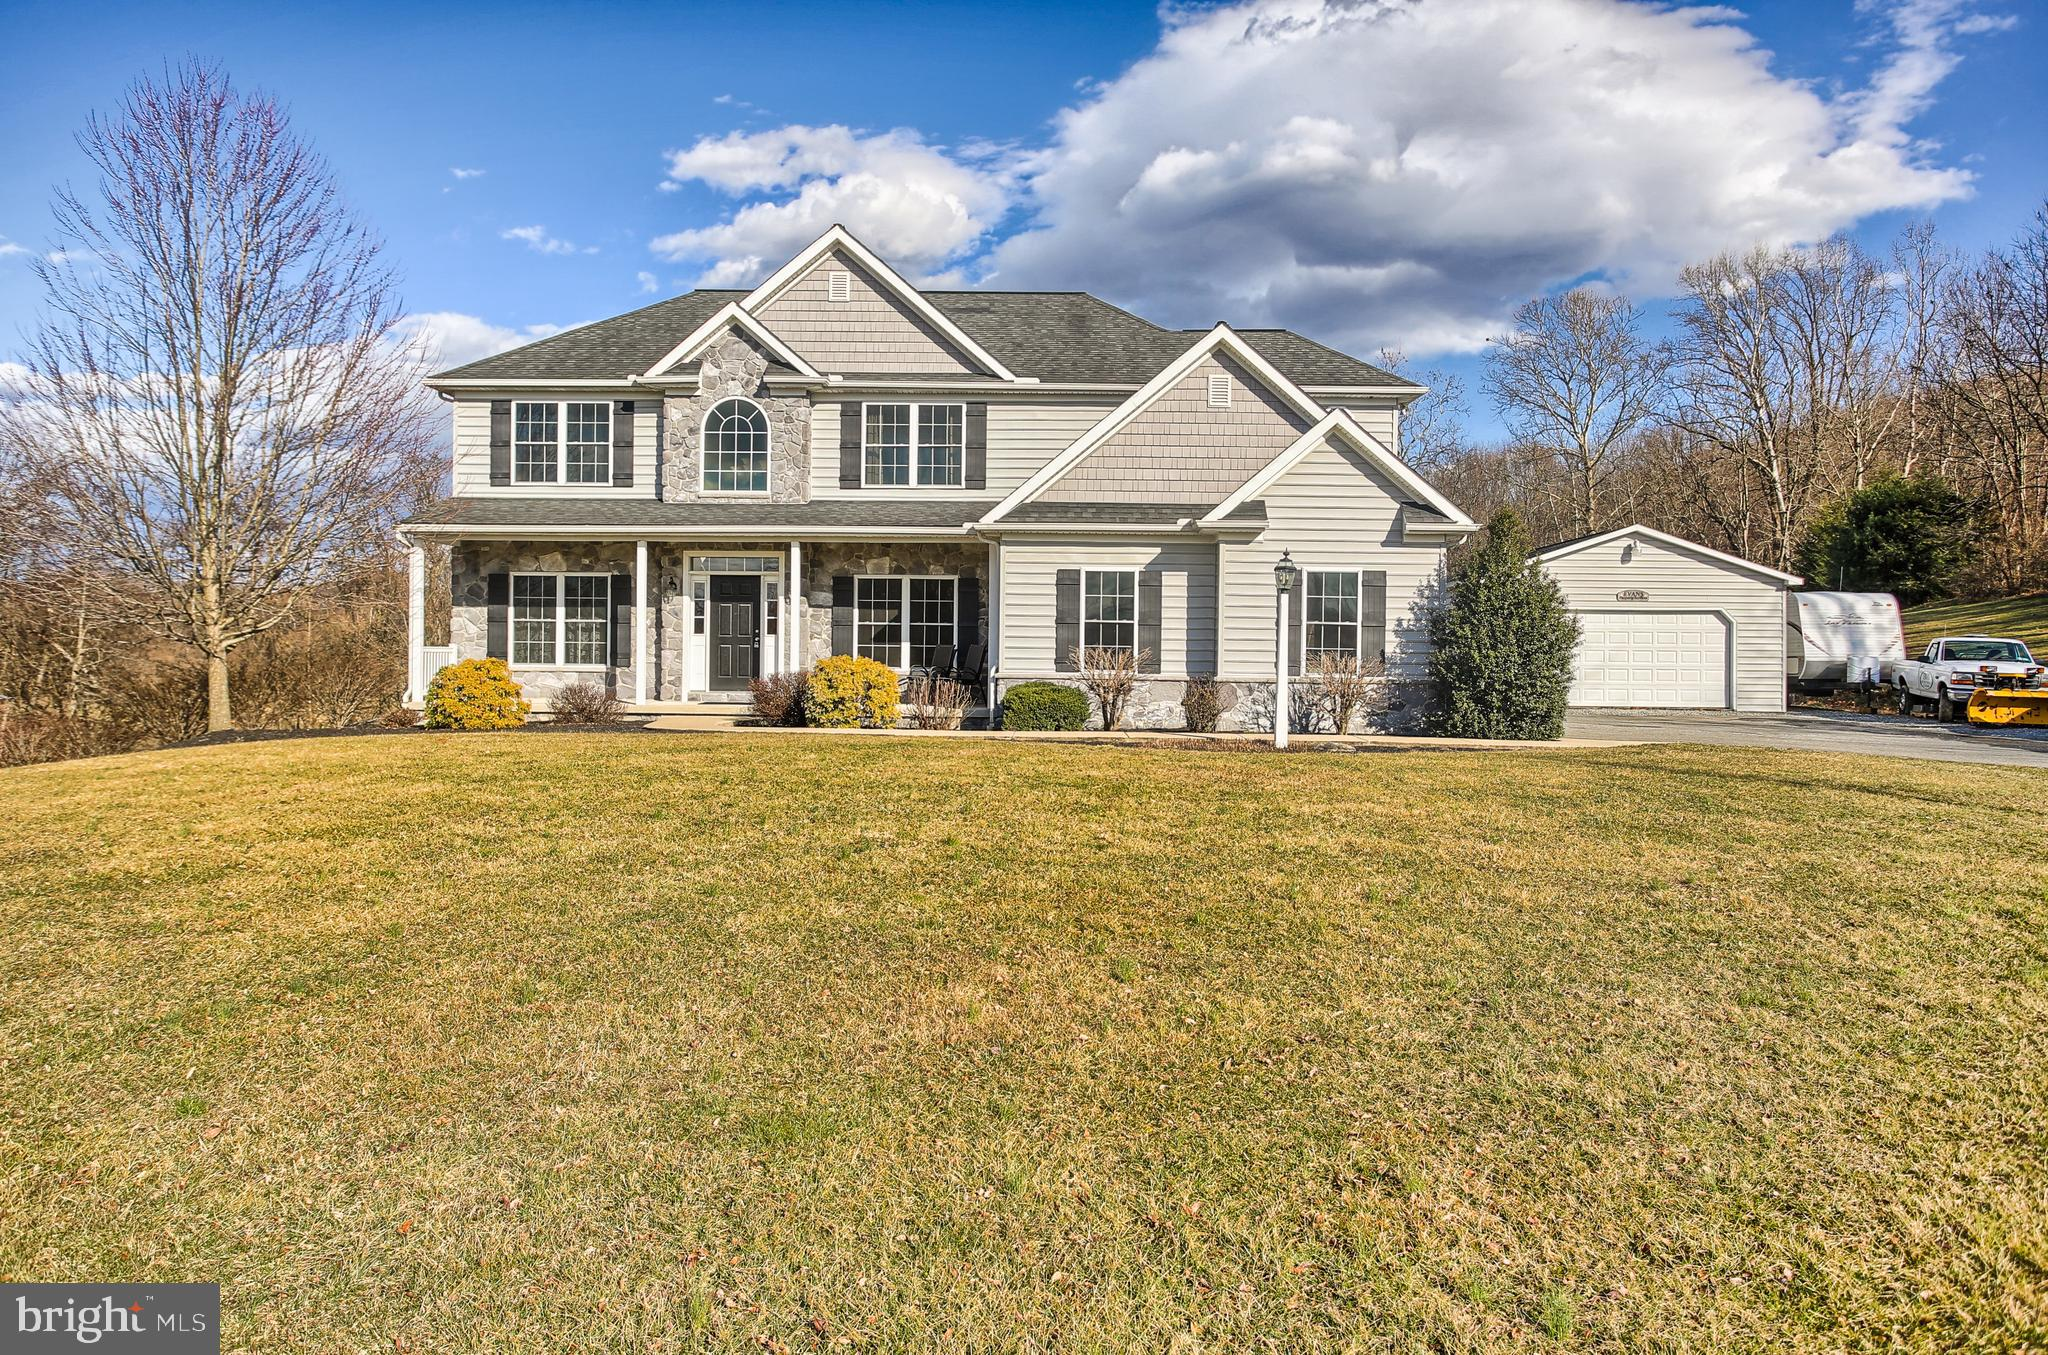 147 FORGE HILL ROAD, WRIGHTSVILLE, PA 17368